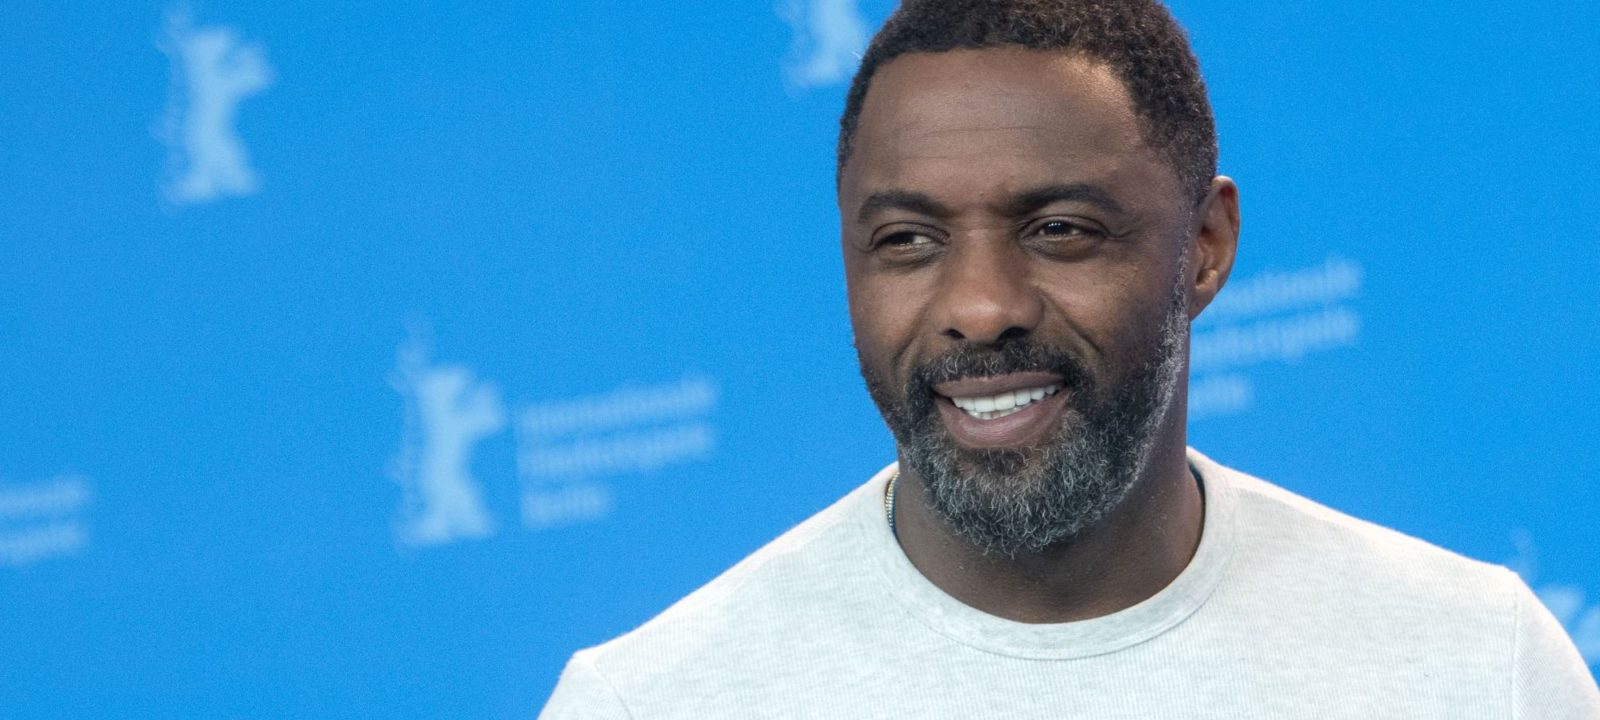 "British actor, director and executive producer Idris Elba poses during a photo call for the film ""Yardie"" shown in the ""Panorama Special"" category during the 68th edition of the Berlinale film festival in Berlin on February 22, 2018. / AFP PHOTO / Stefanie LOOS"